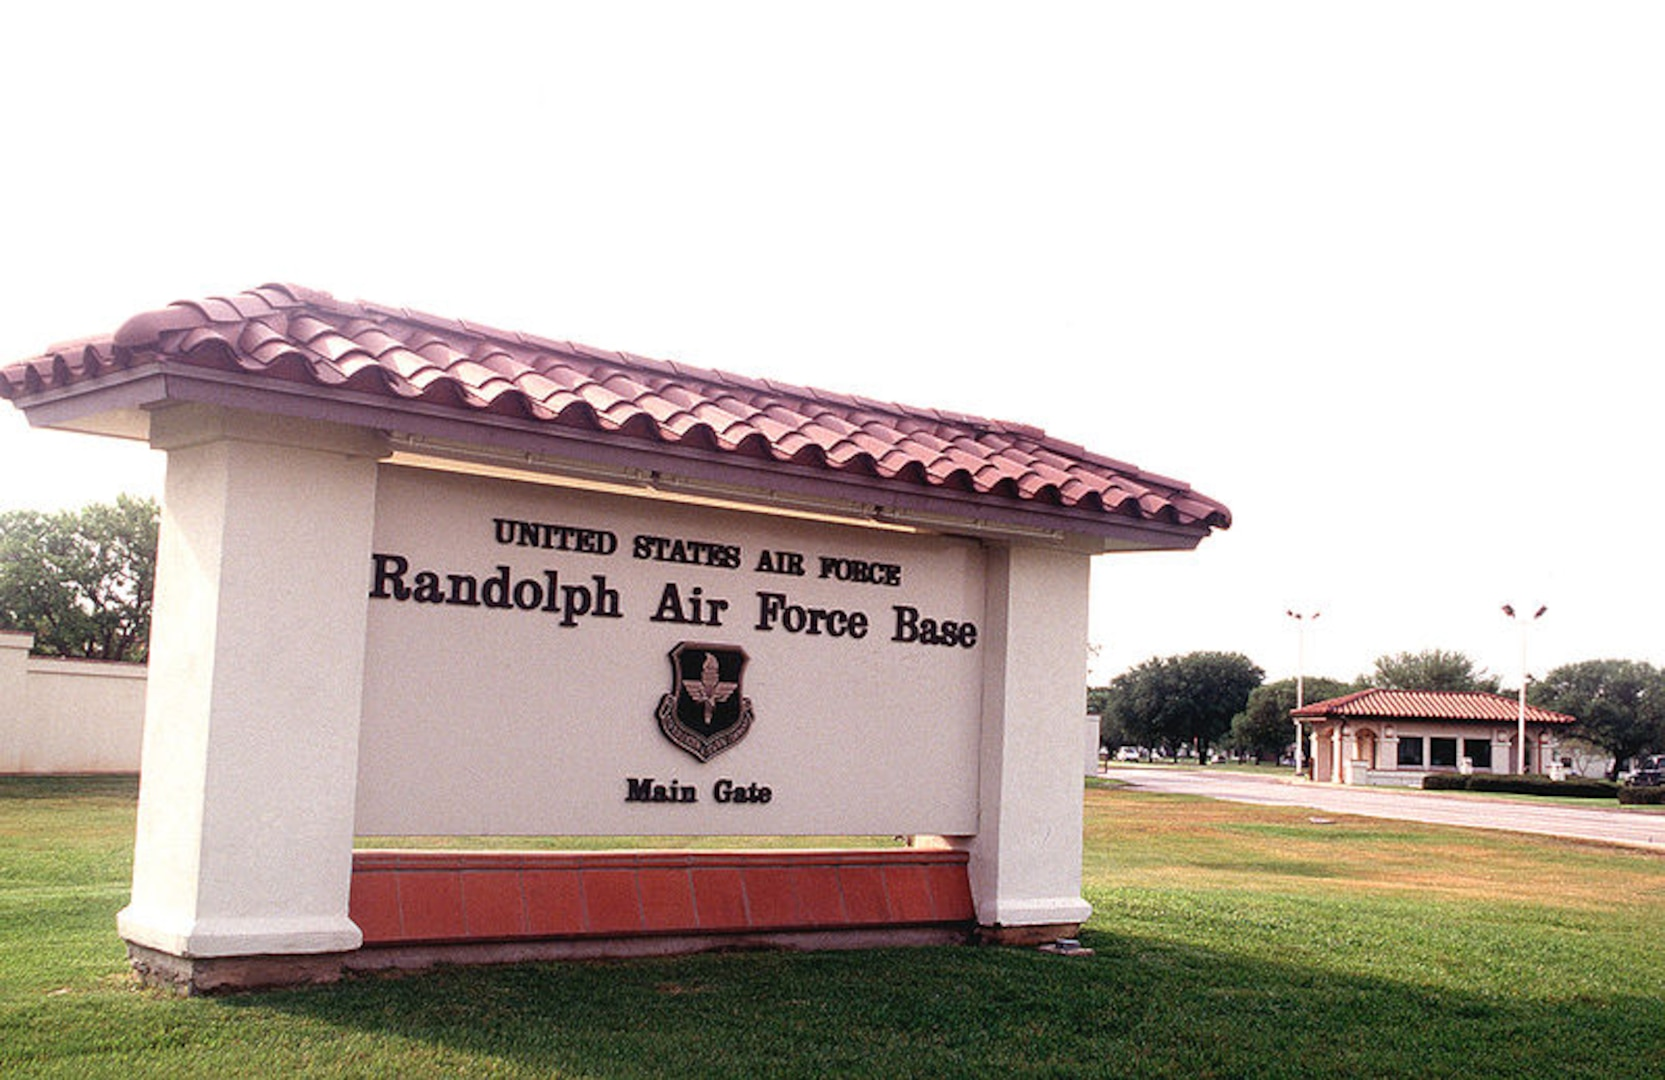 Signage for Randolph Air Force Base.